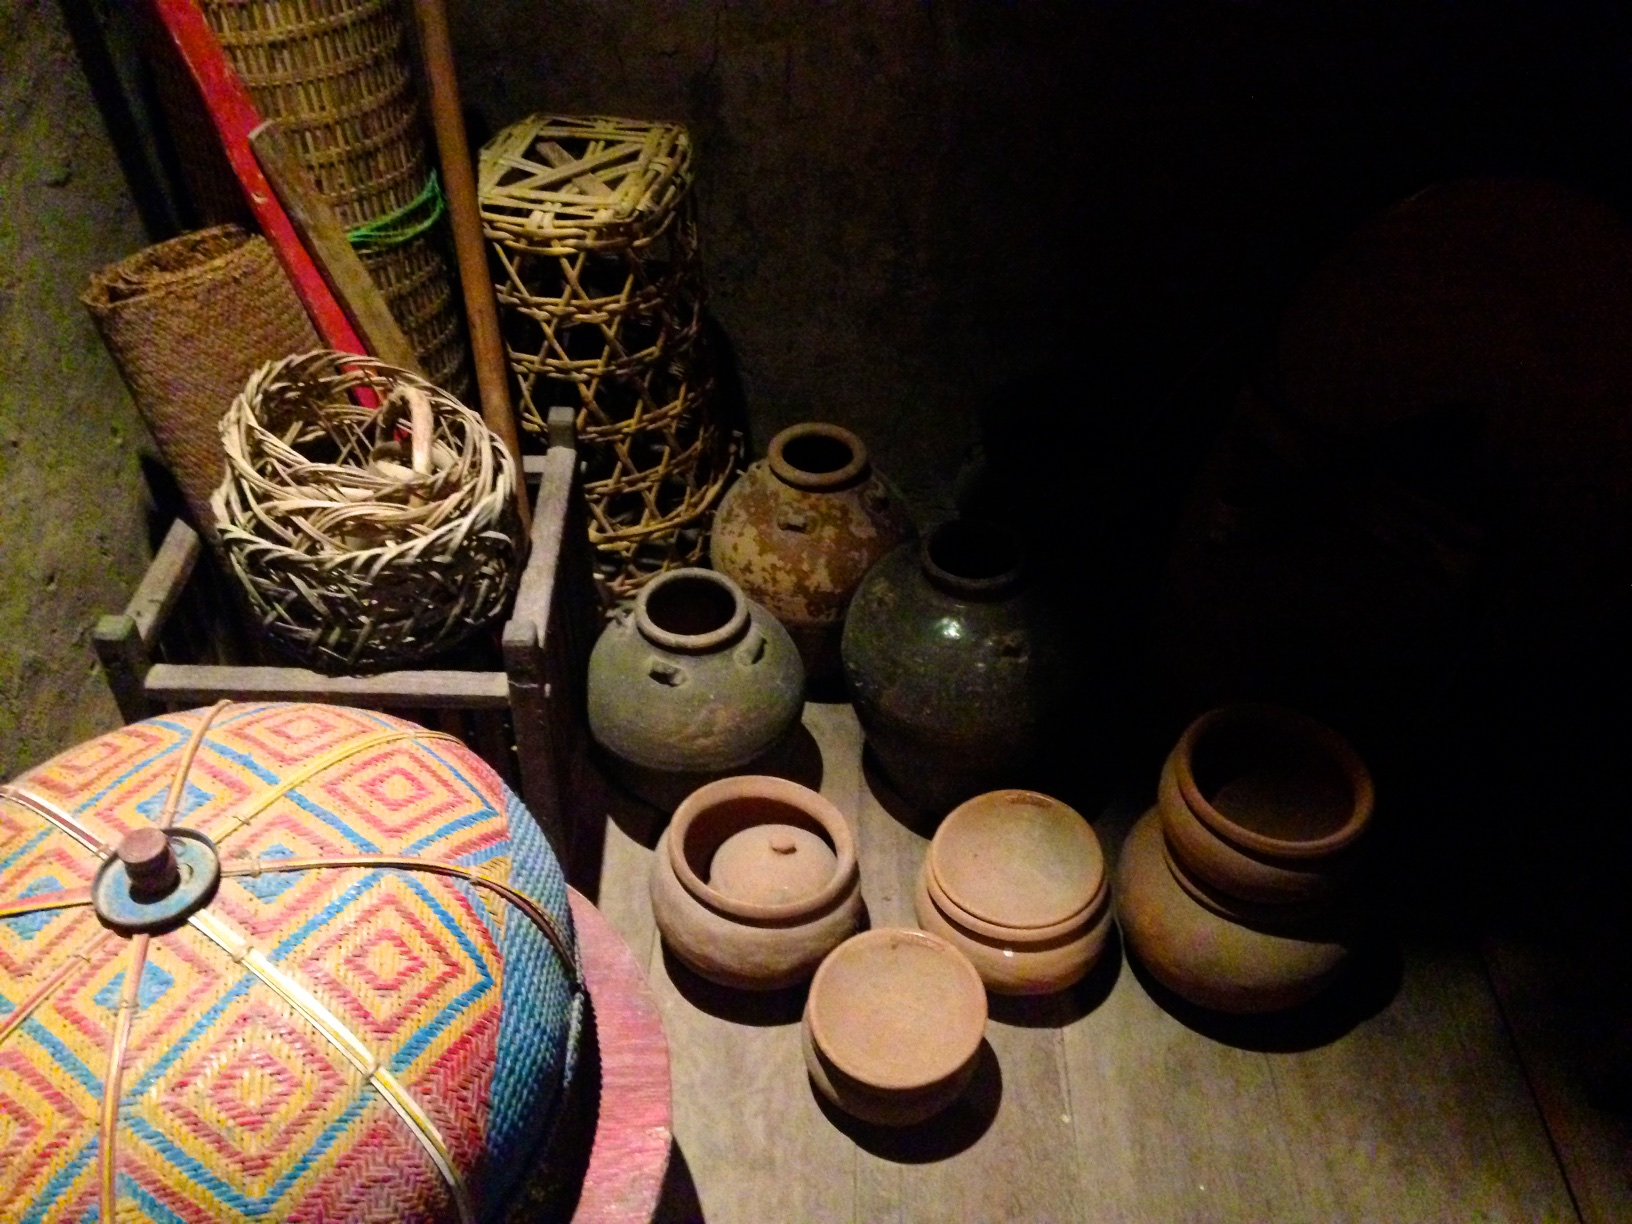 Open Air Exhibition - Houses of diverse ethnic groups